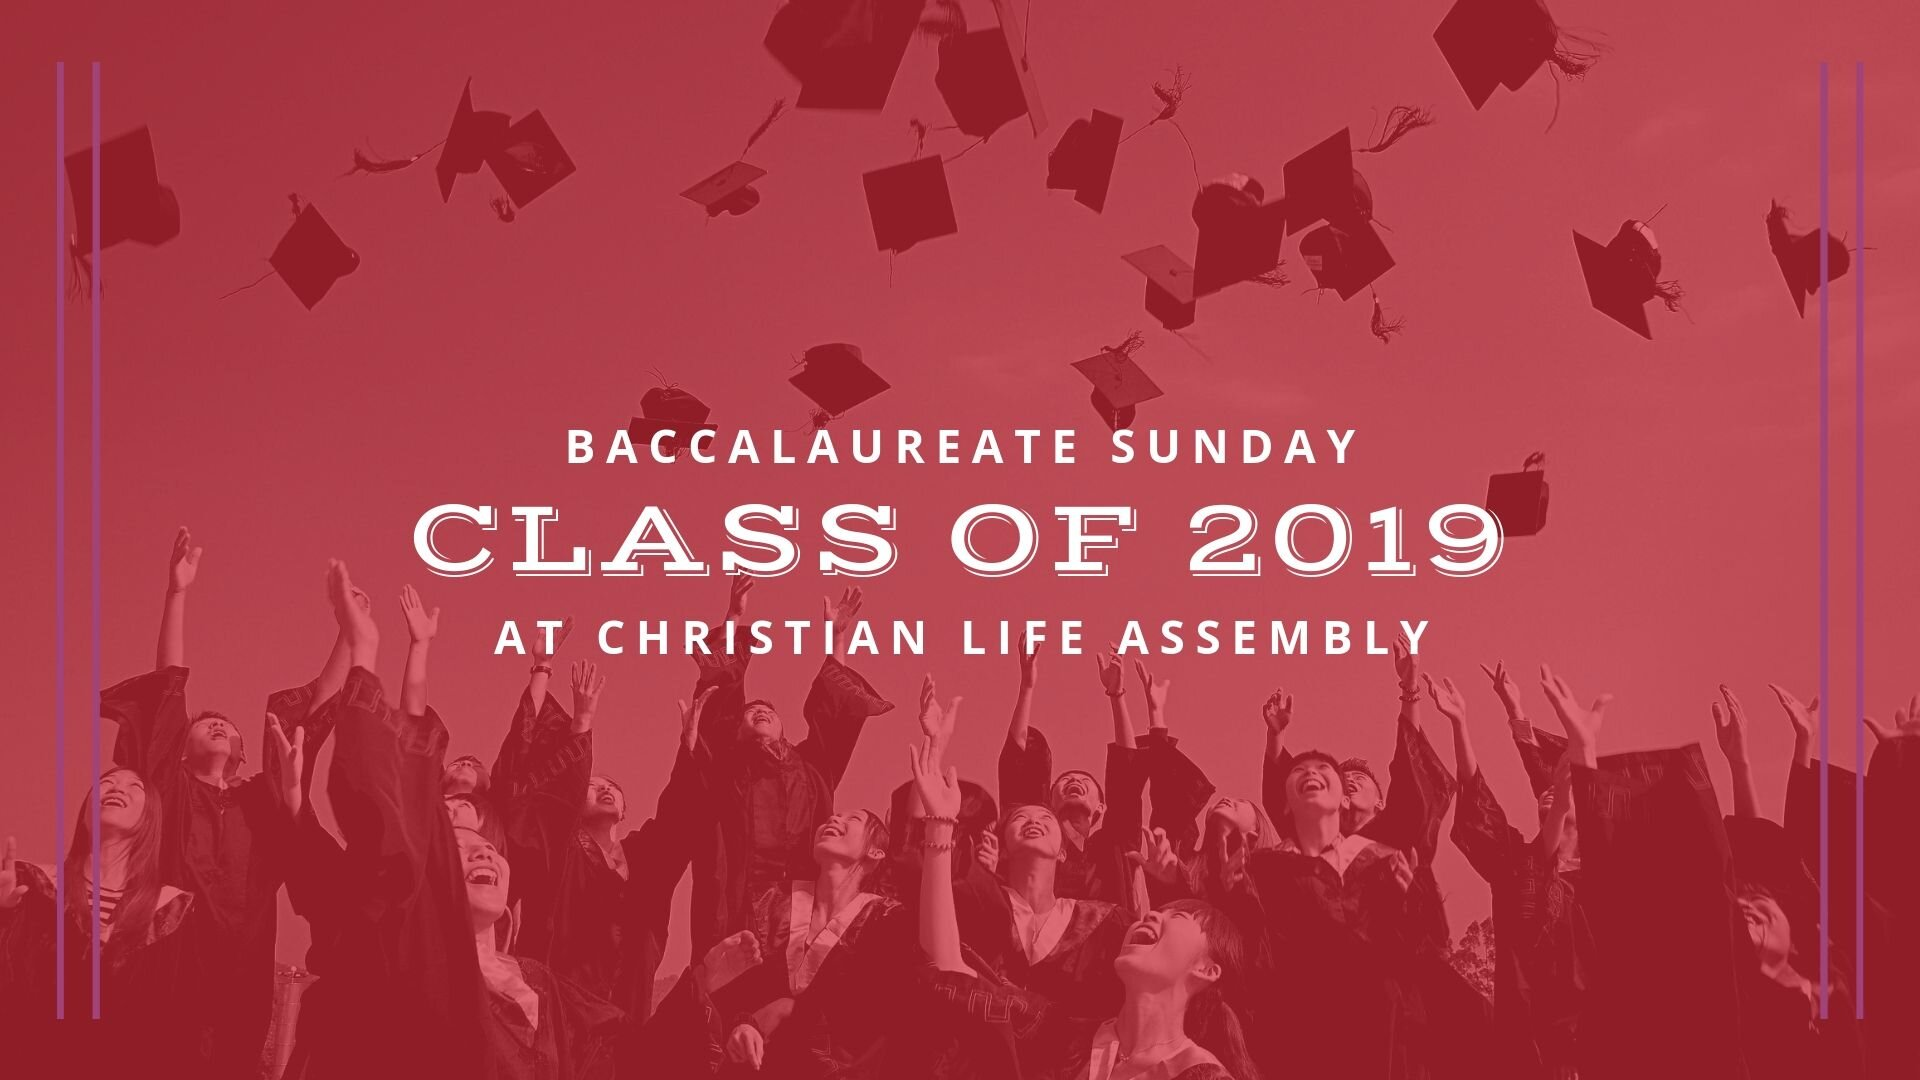 Sunday, June 7, 2020 11:00 AM service.  Deadline to register is Sunday, May 3, 2020.